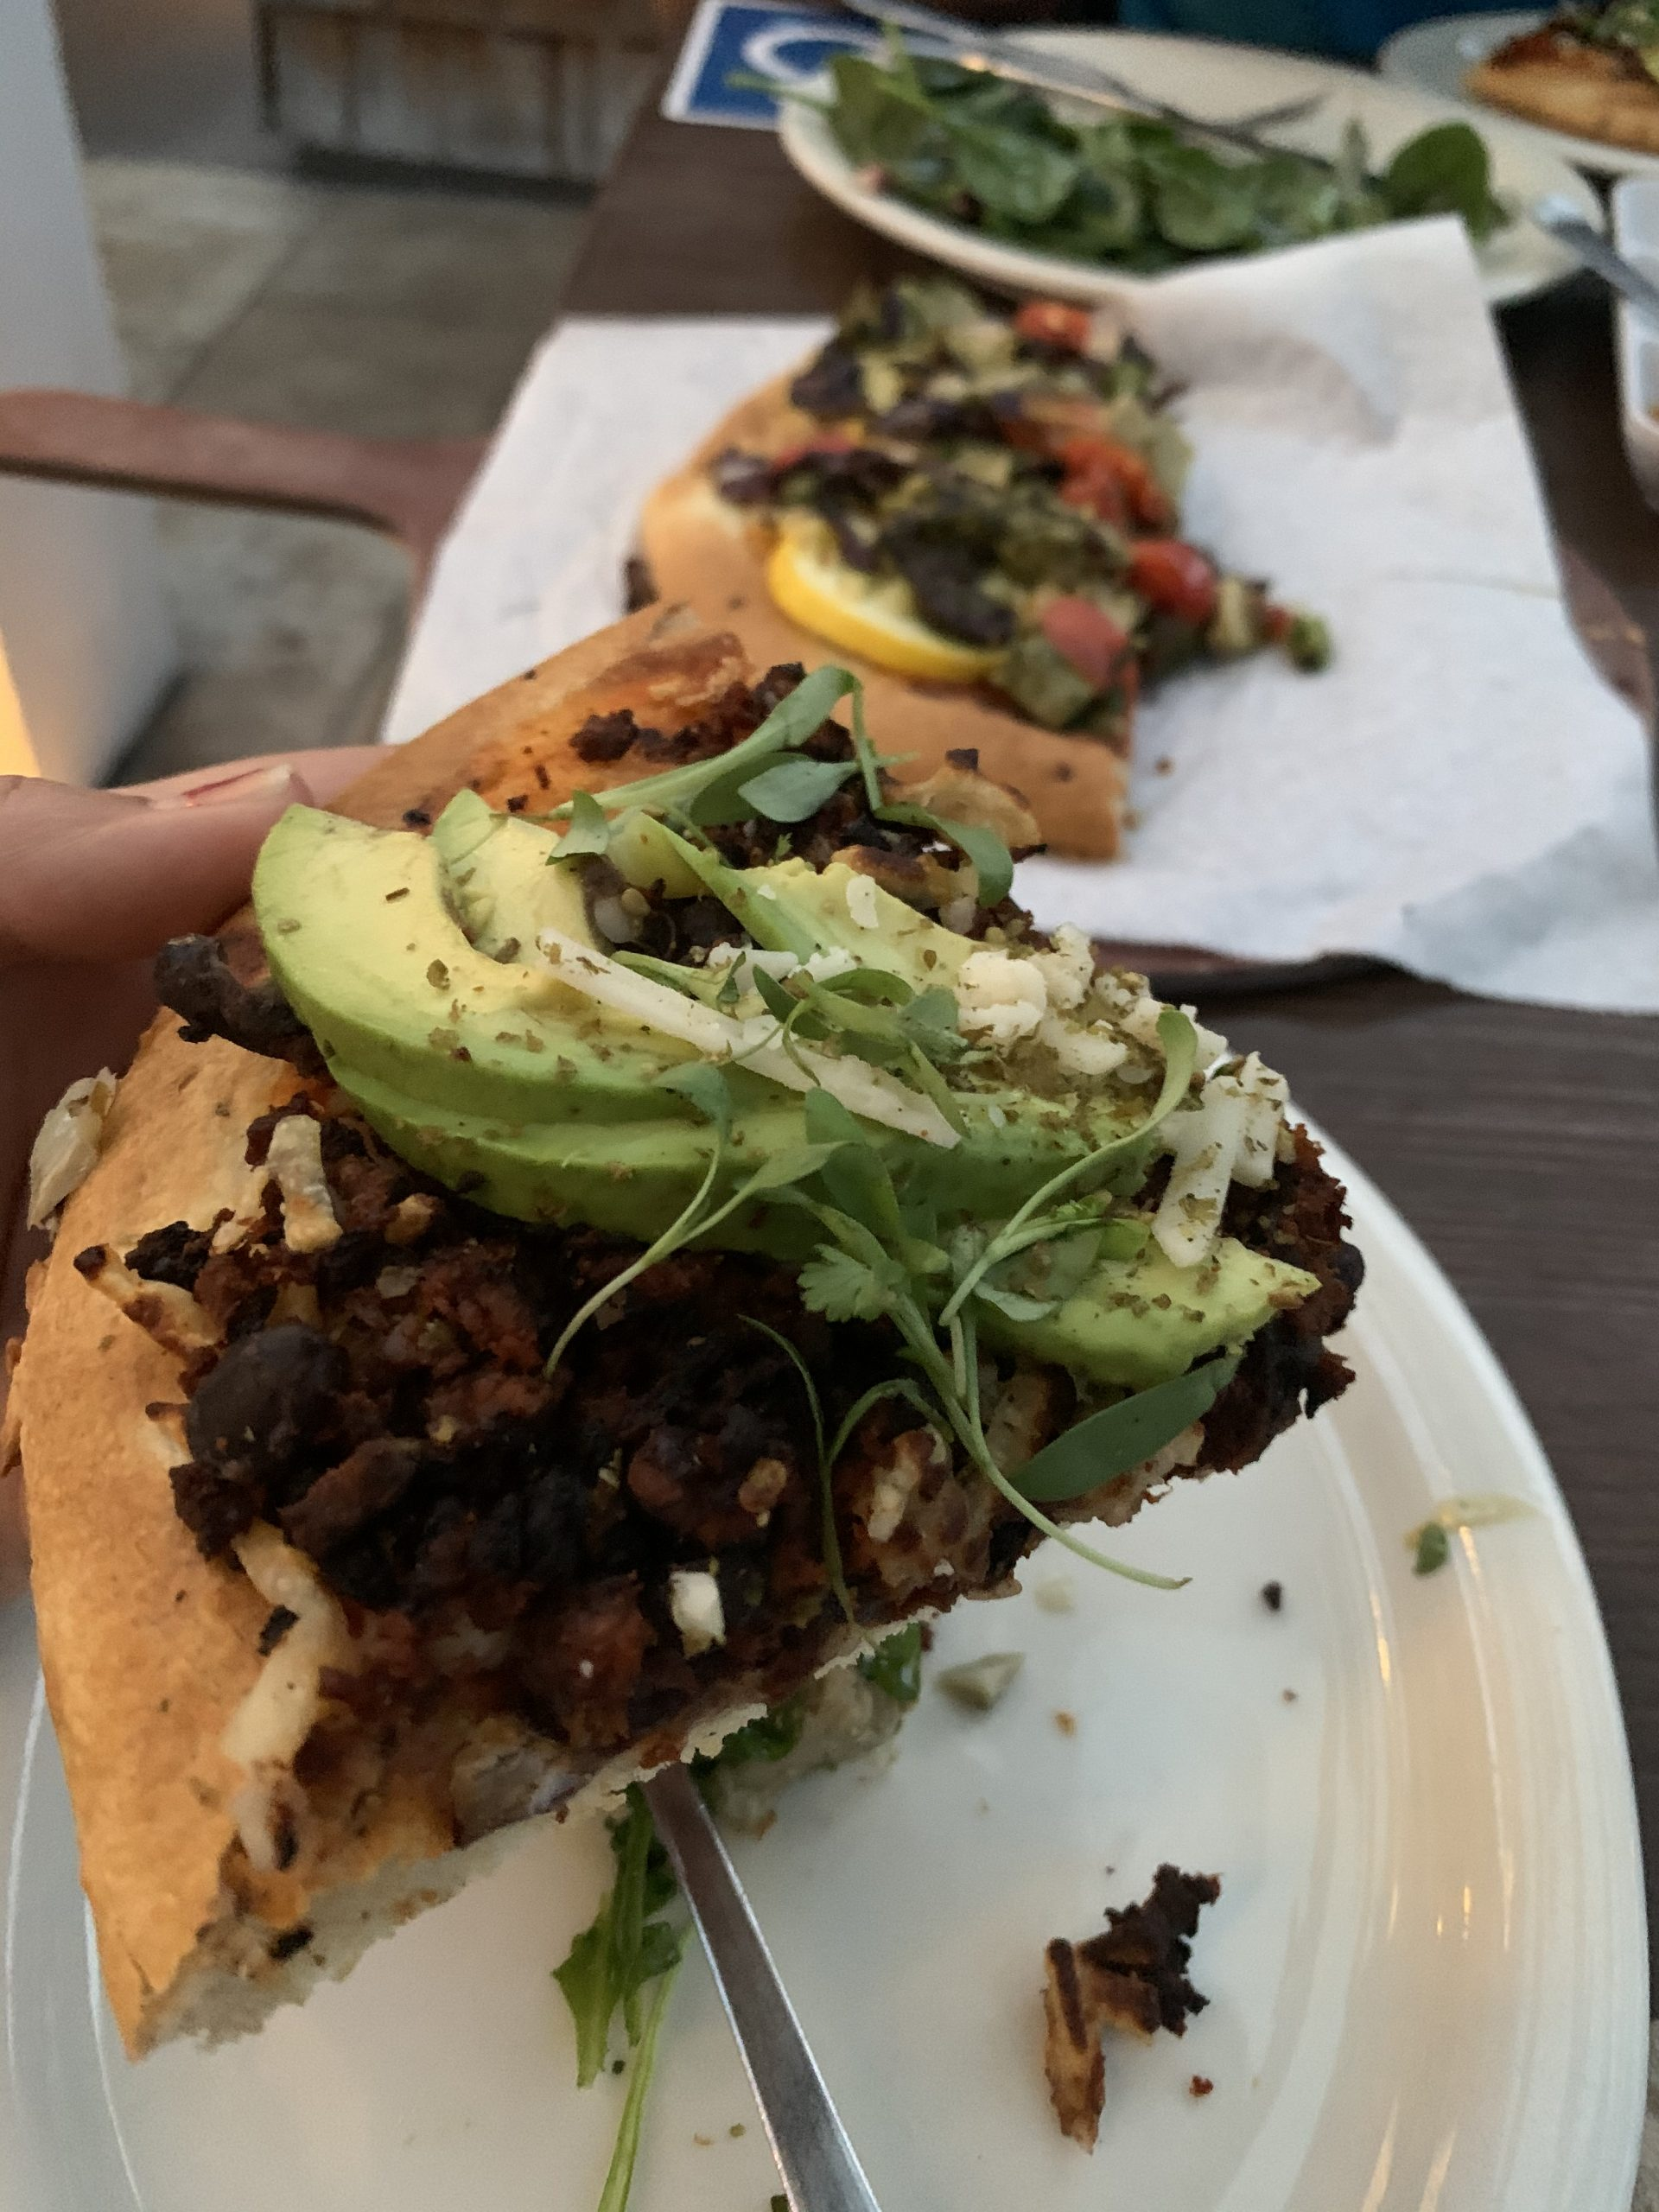 Review of Urth Caffe's organic coffee and Food